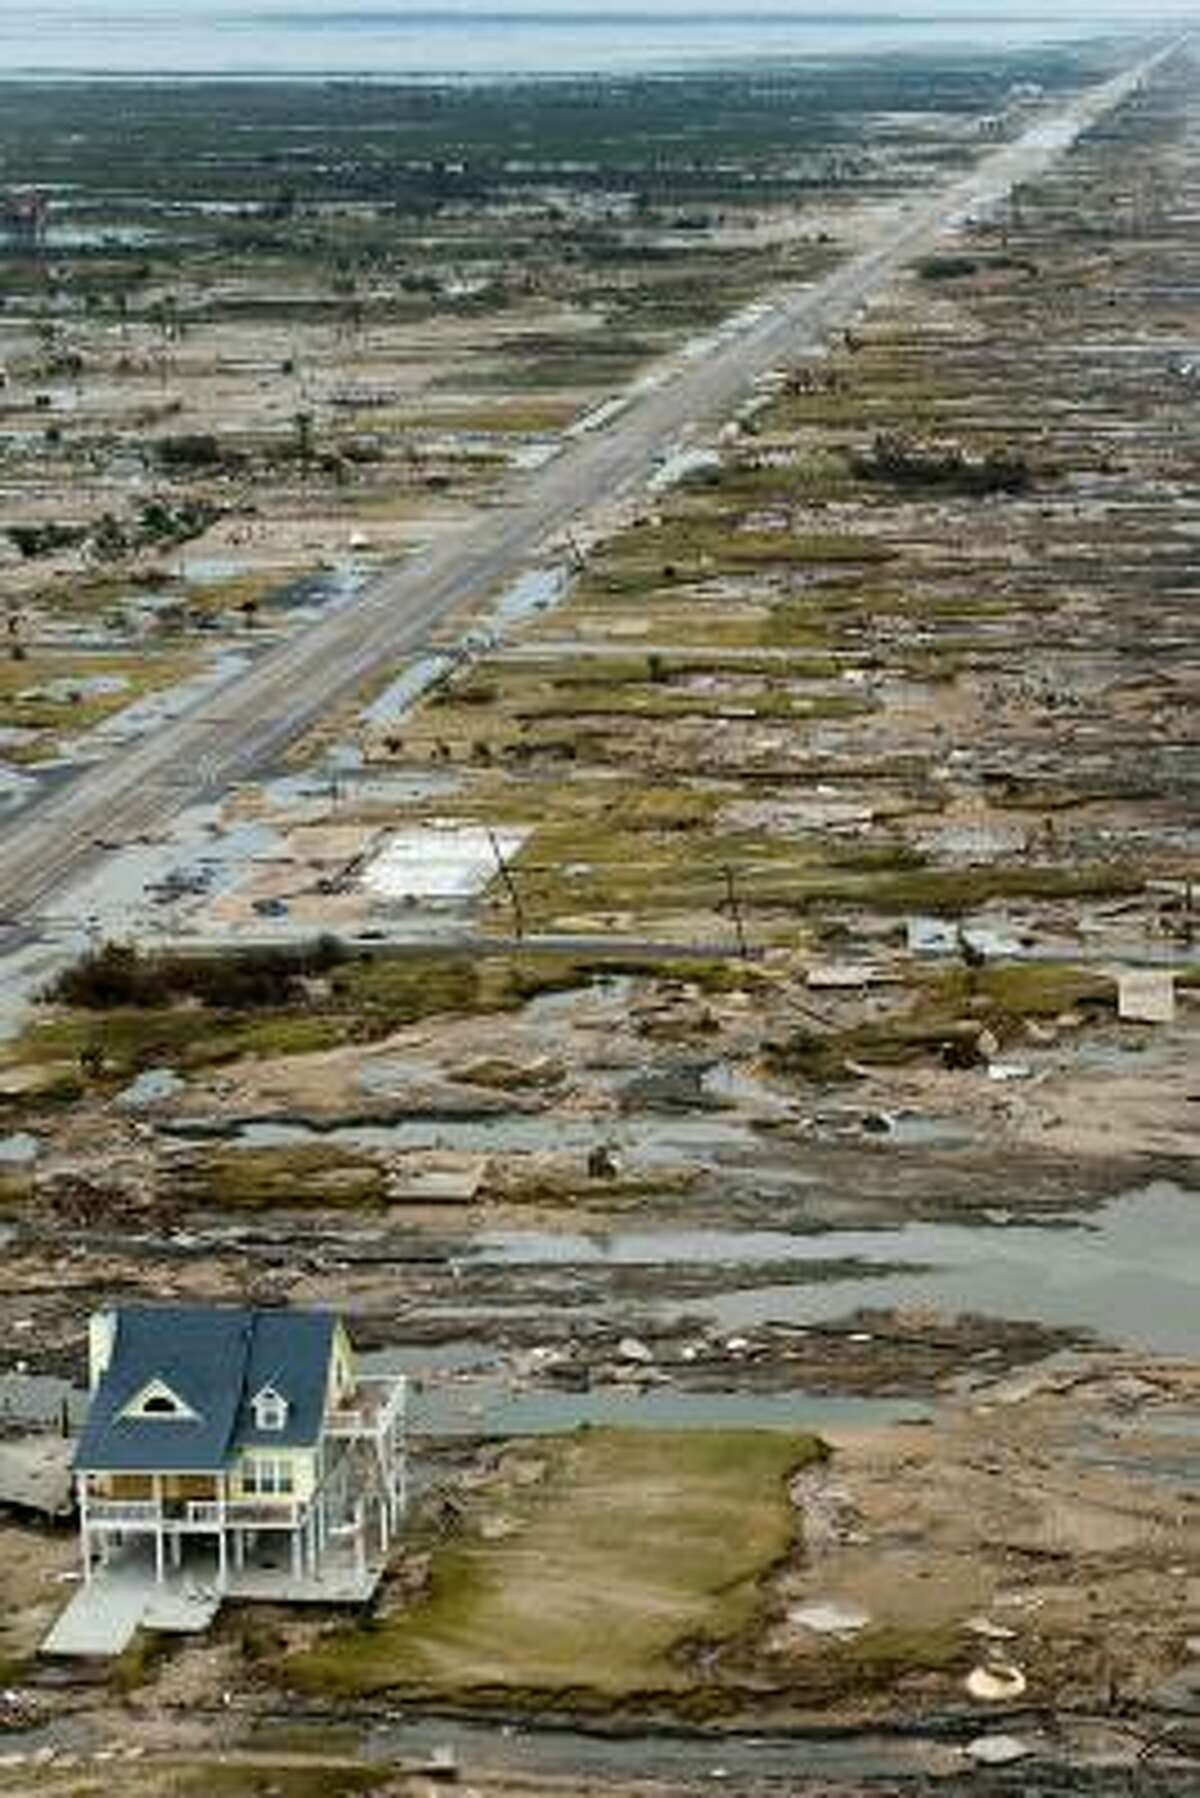 A single house is left standing Sunday in the aftermath of Hurricane Ike in the town of Gilchrist on the Bolivar Peninsula.